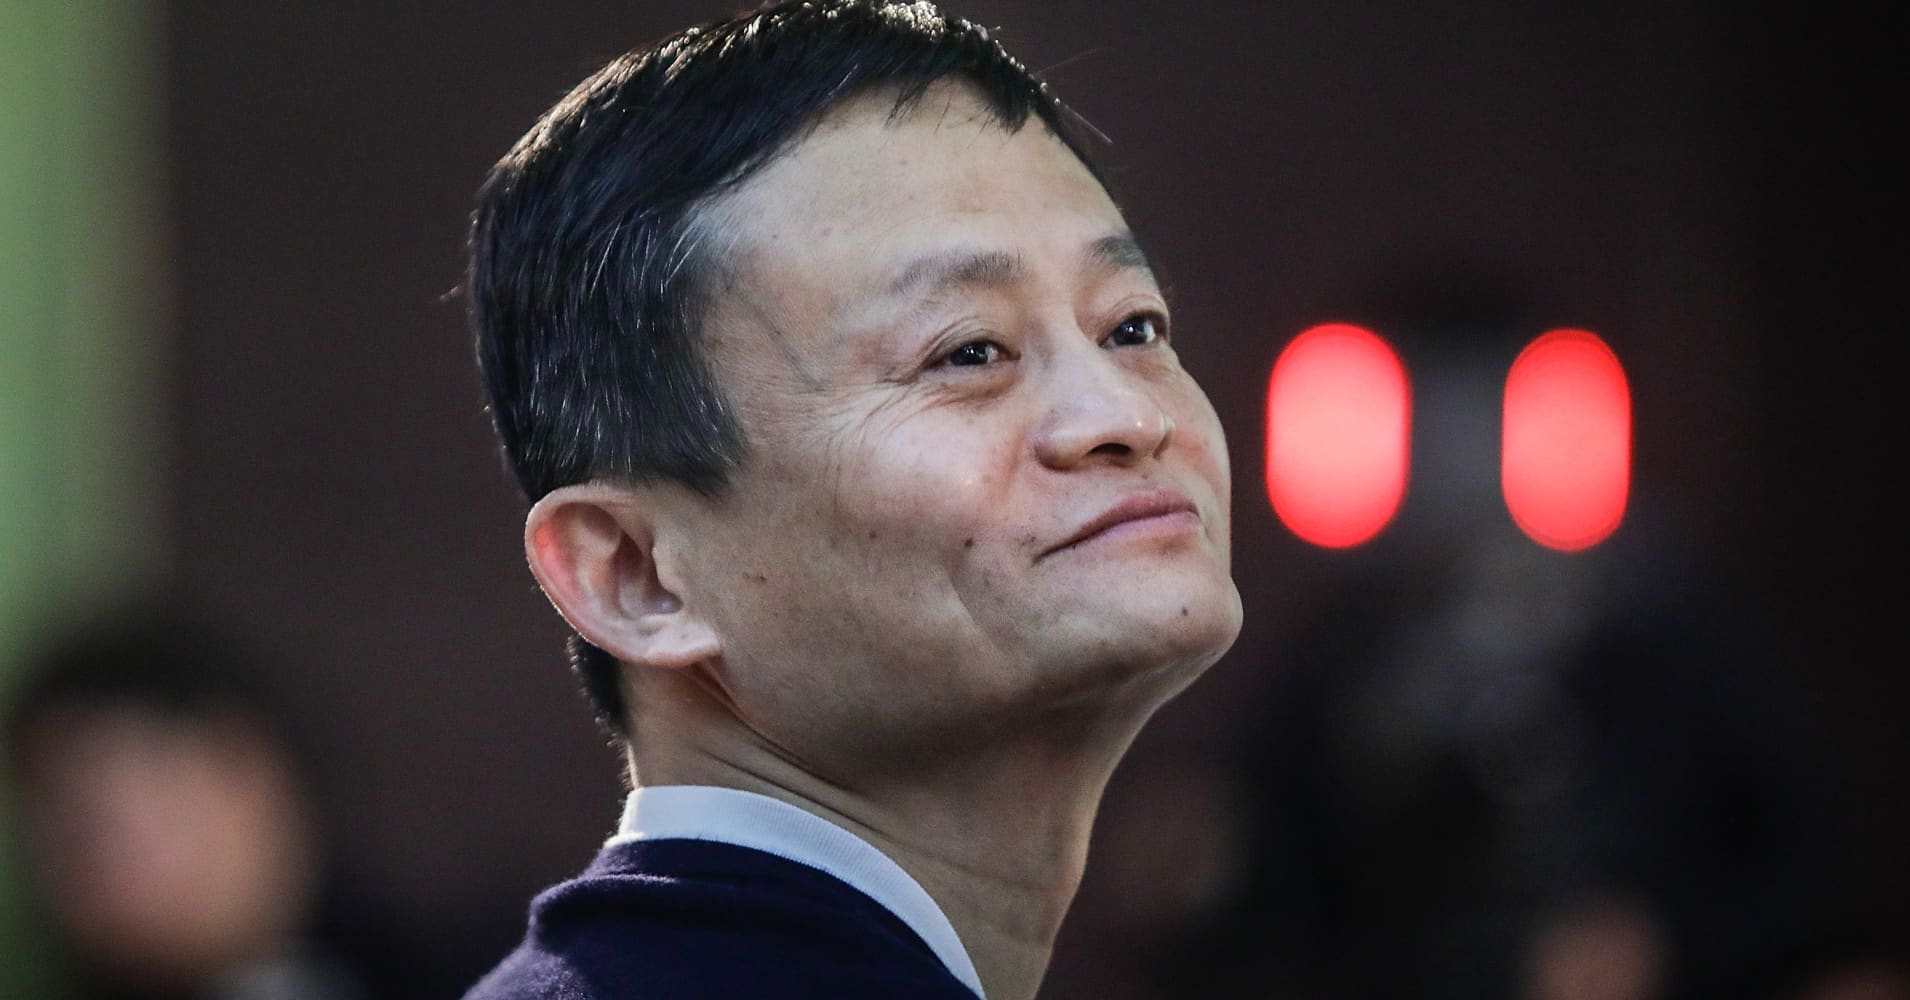 Jack Ma sticks to his goals by repeating 3 questions to himself